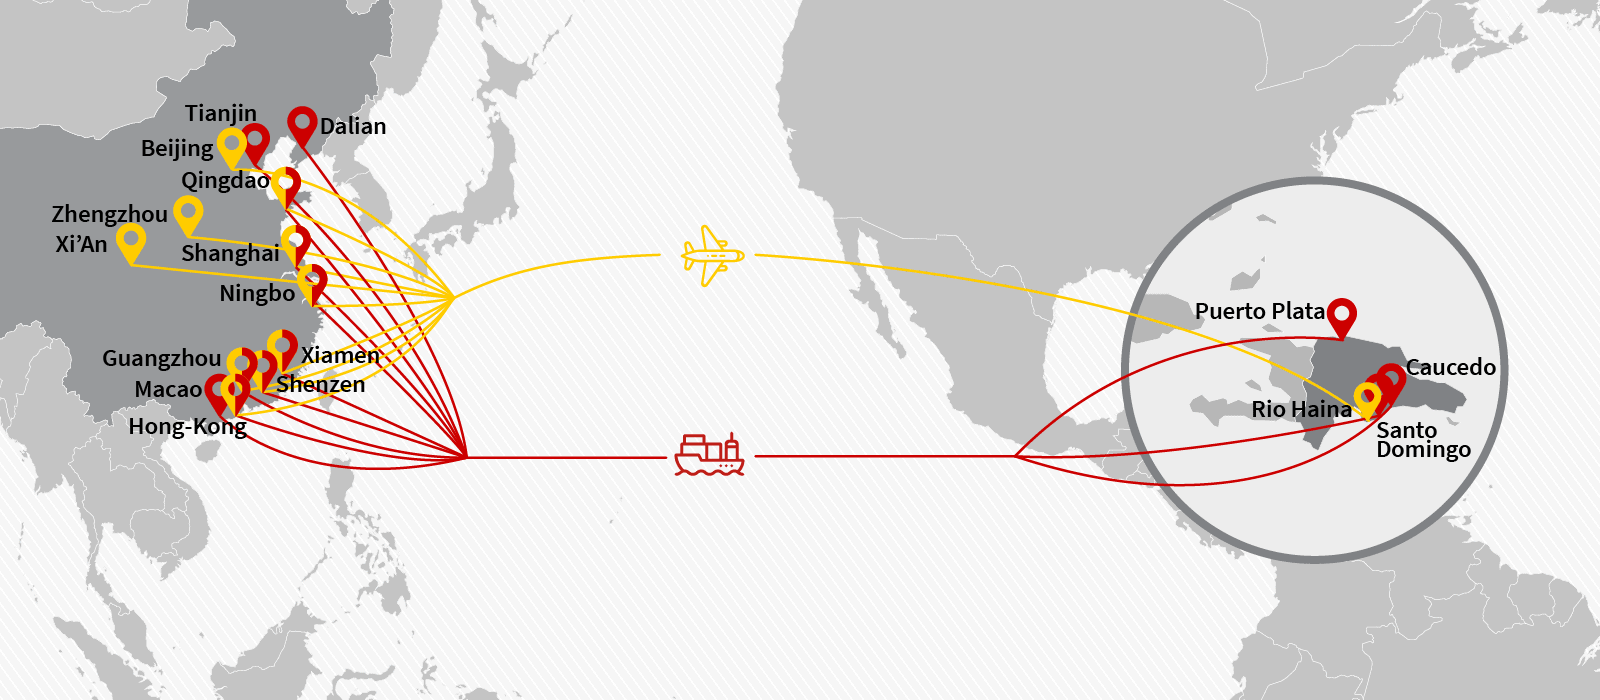 Cargo & freight shipping from China to the Dominican Republic by Air Charter or Ocean Container - Main POL, POD & Routes